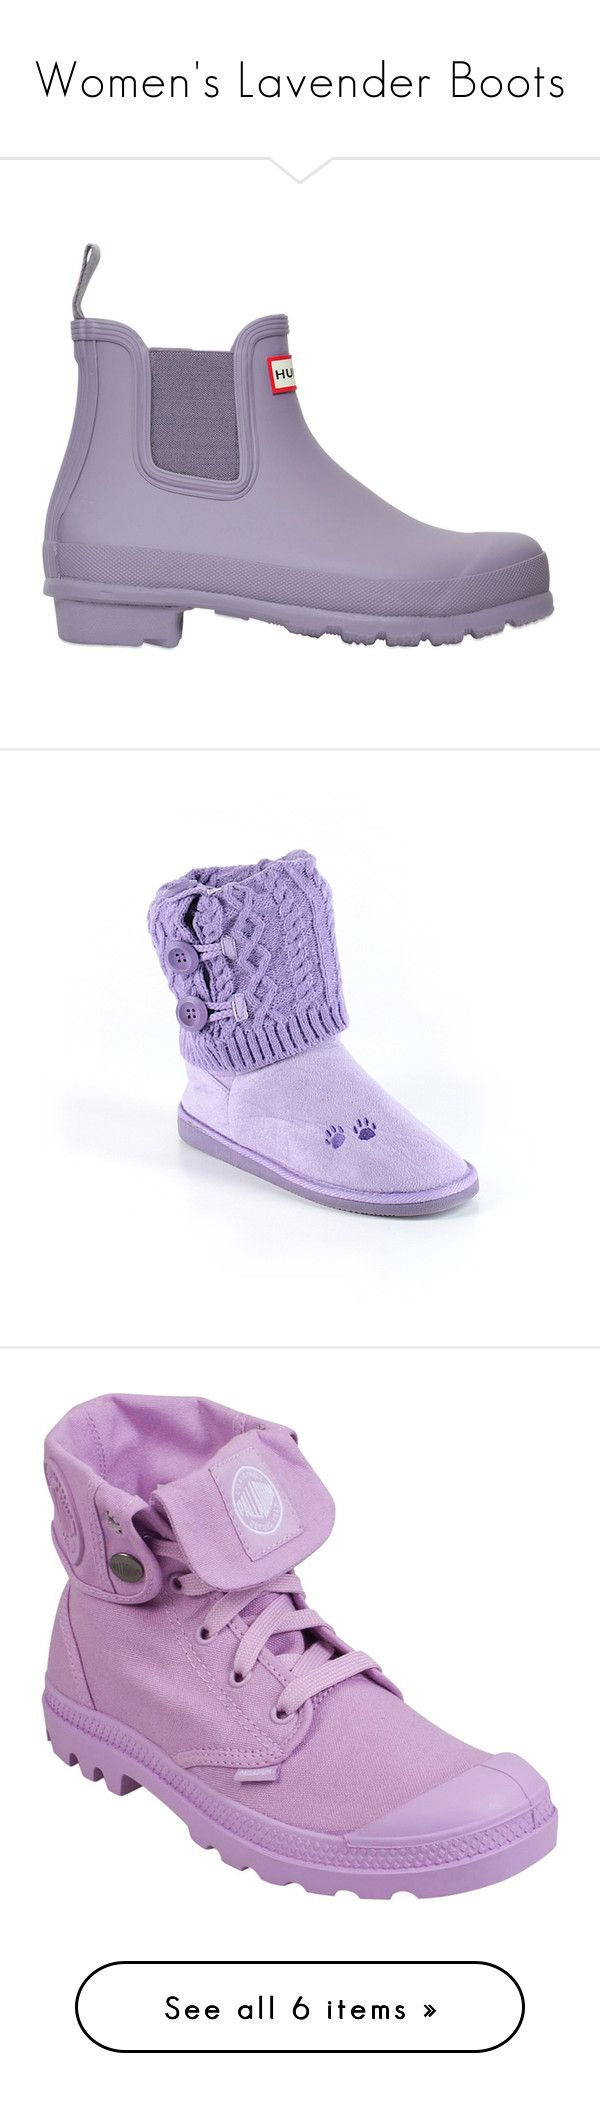 """""""Women's Lavender Boots"""" by eternalfeatherfilm on Polyvore featuring shoes, boots, lilla, hunter boots, wellington boots, wellies shoes, wellies boots, elastic boots, purple and purple boots"""